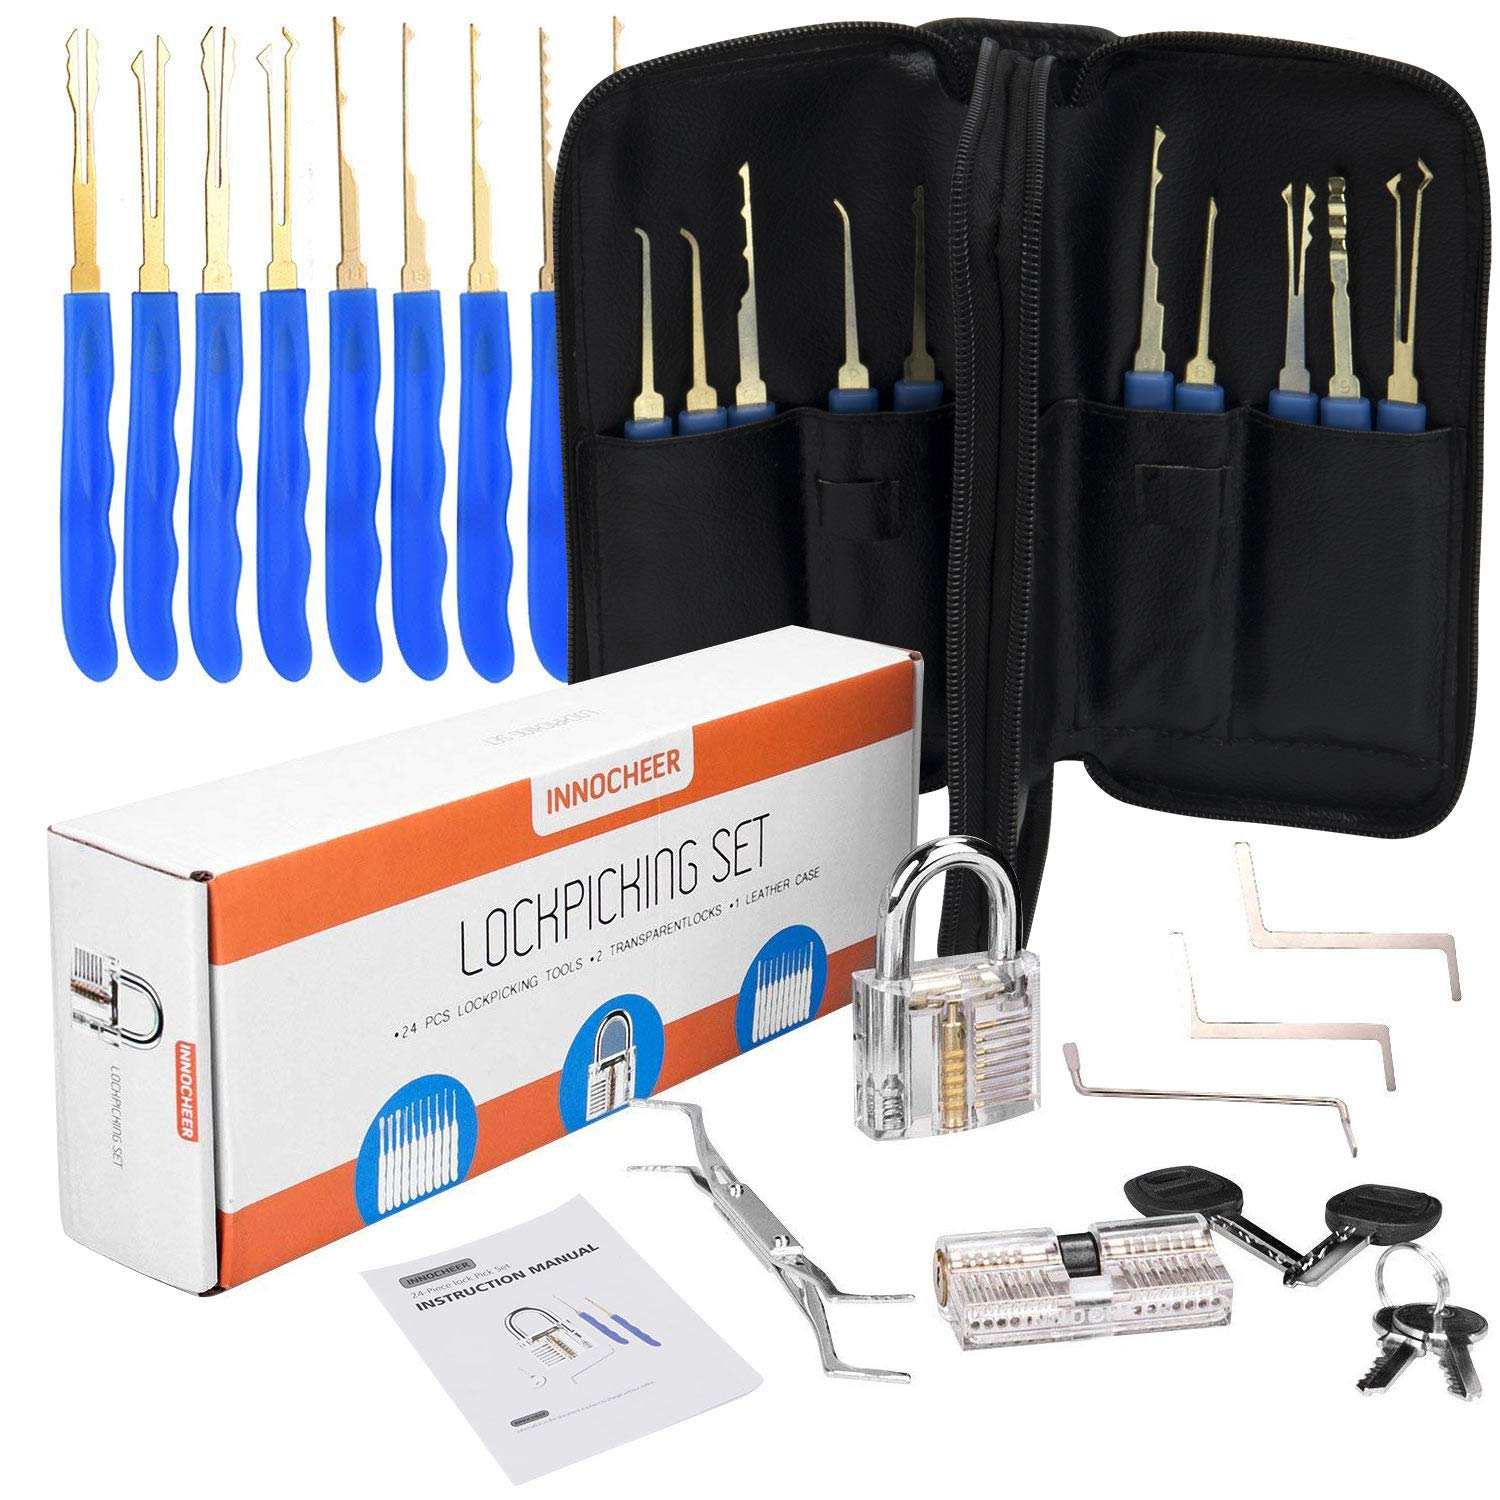 INNOCHEER Lock Pick Set, Lock Picking Tools 24 Pieces - with 2 Transparent Training Padlocks for for Beginners, Locksmith, Unlocking Practice, House Lock, Picking Training, Carrying Case is Included